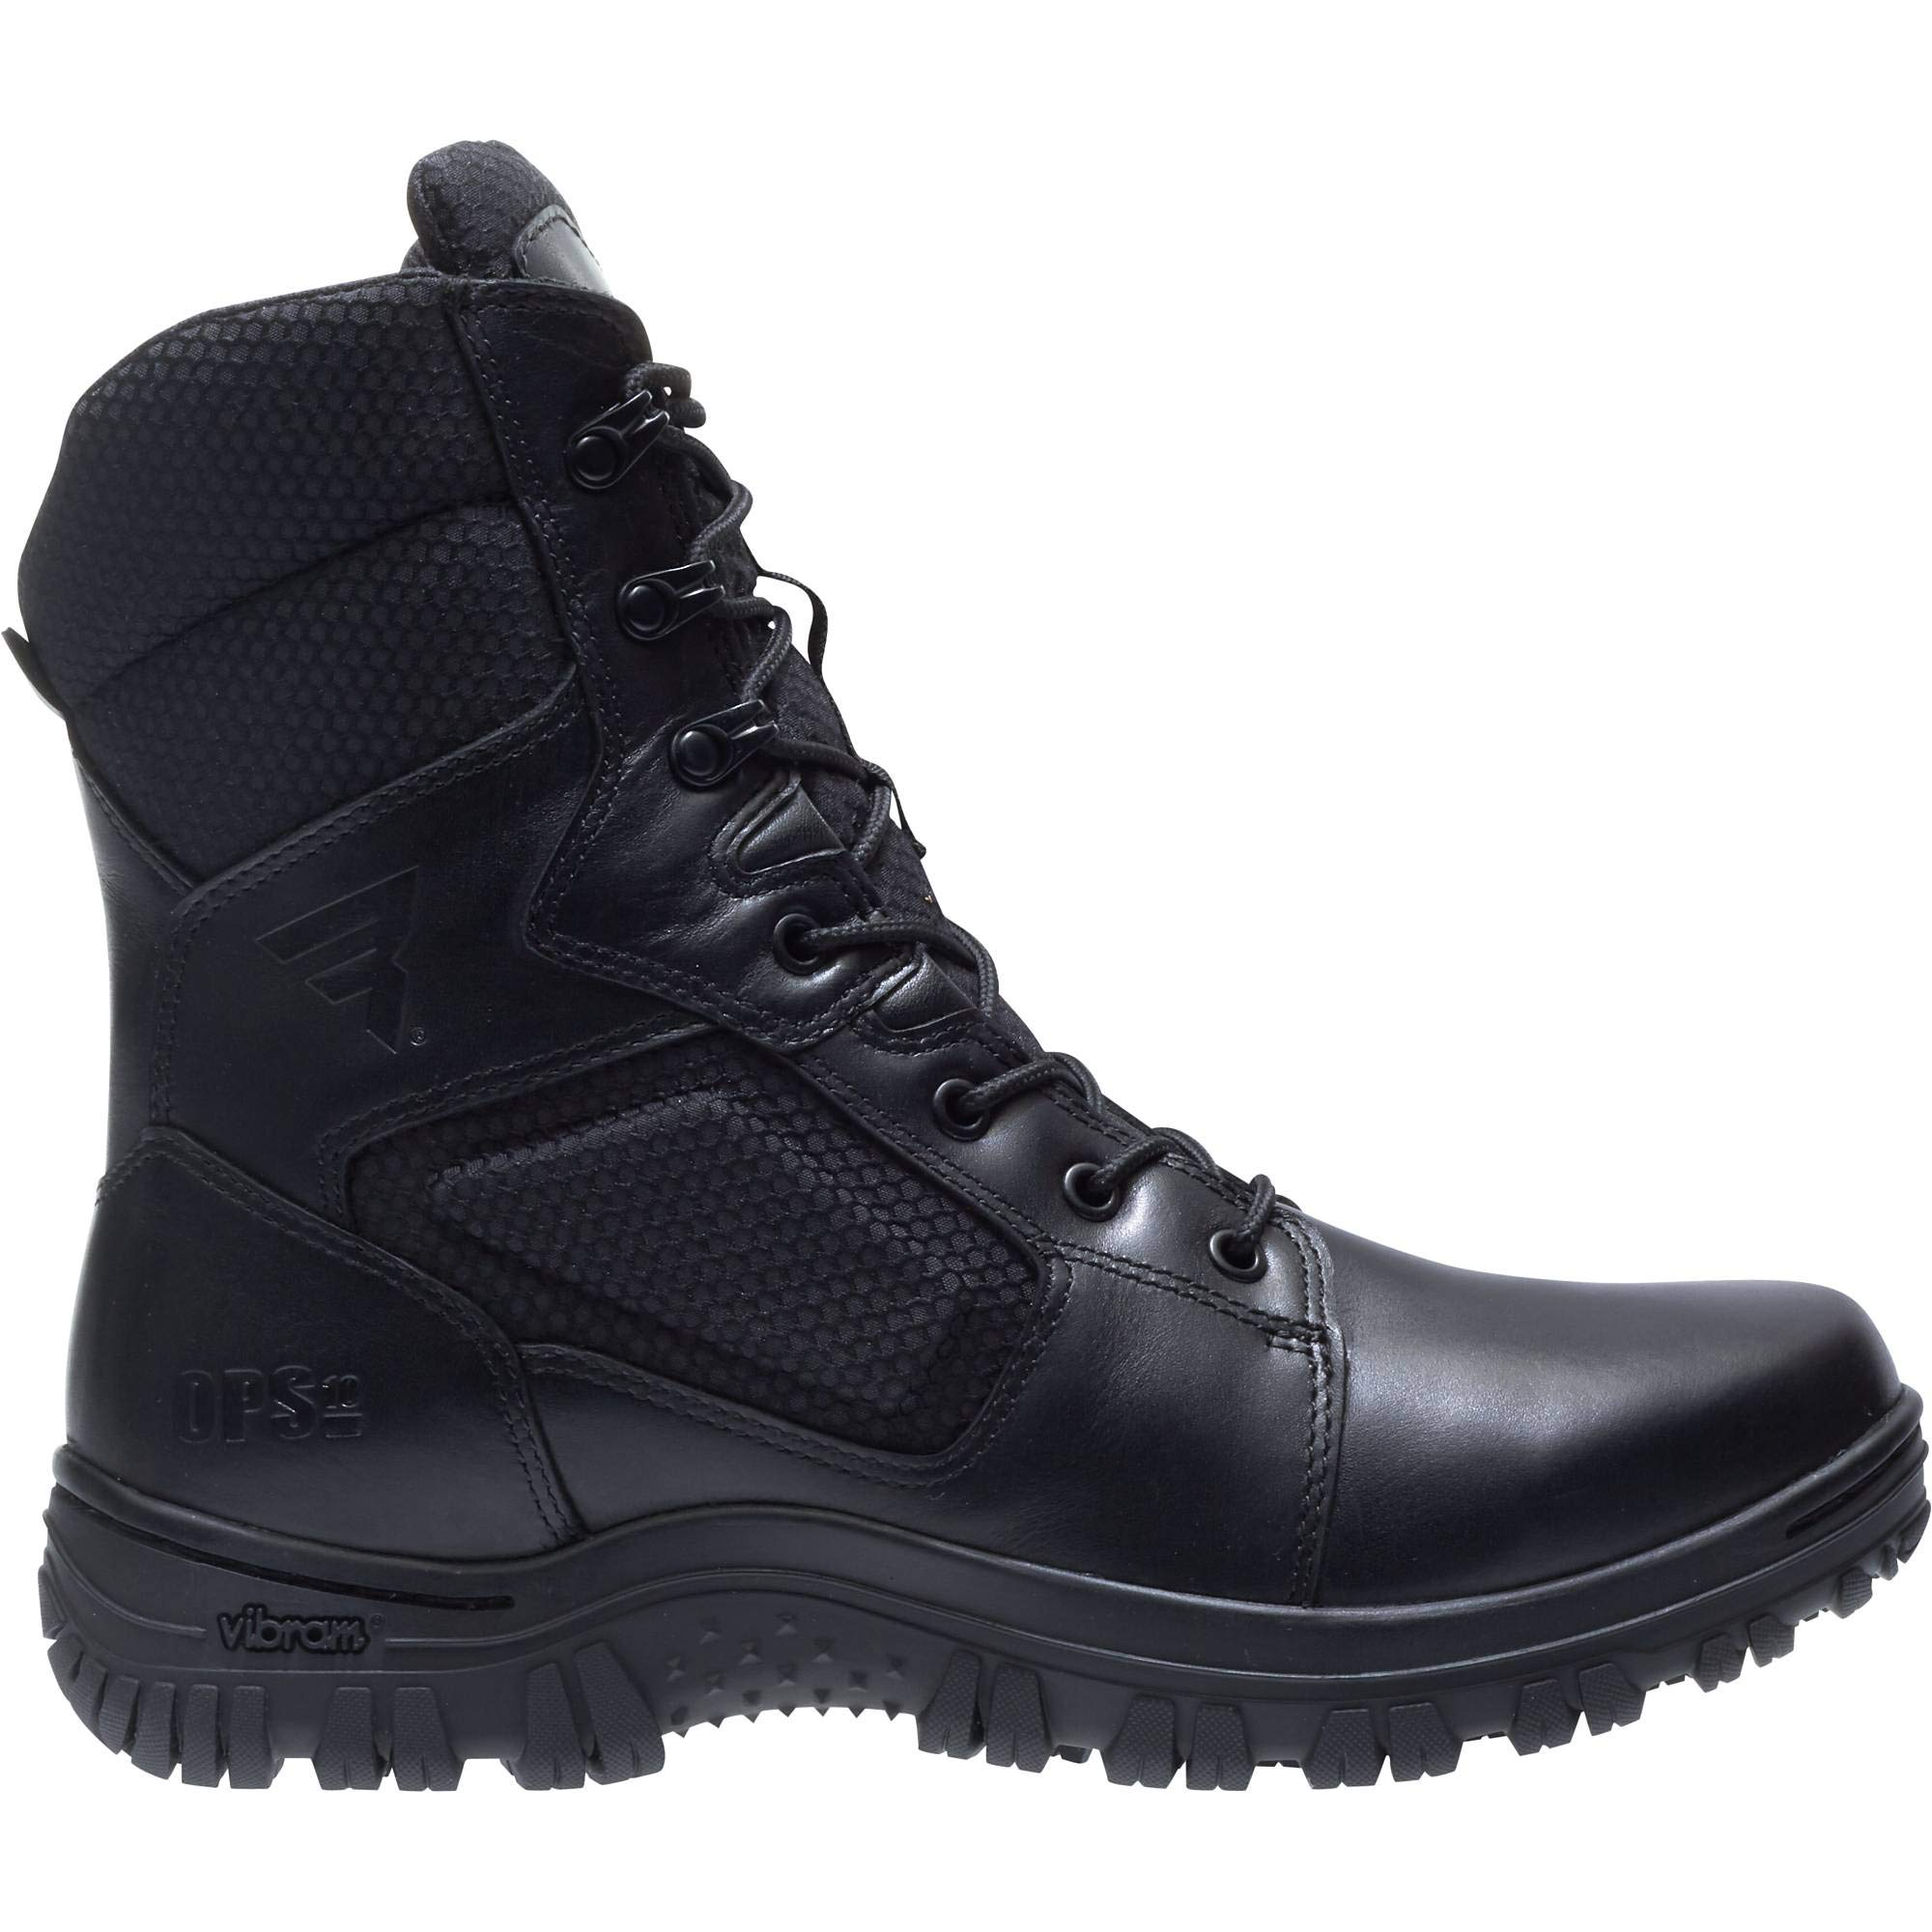 Bates Men's Maneuver Waterproof Fire and Safety Boot, Black, 12 M US by Bates